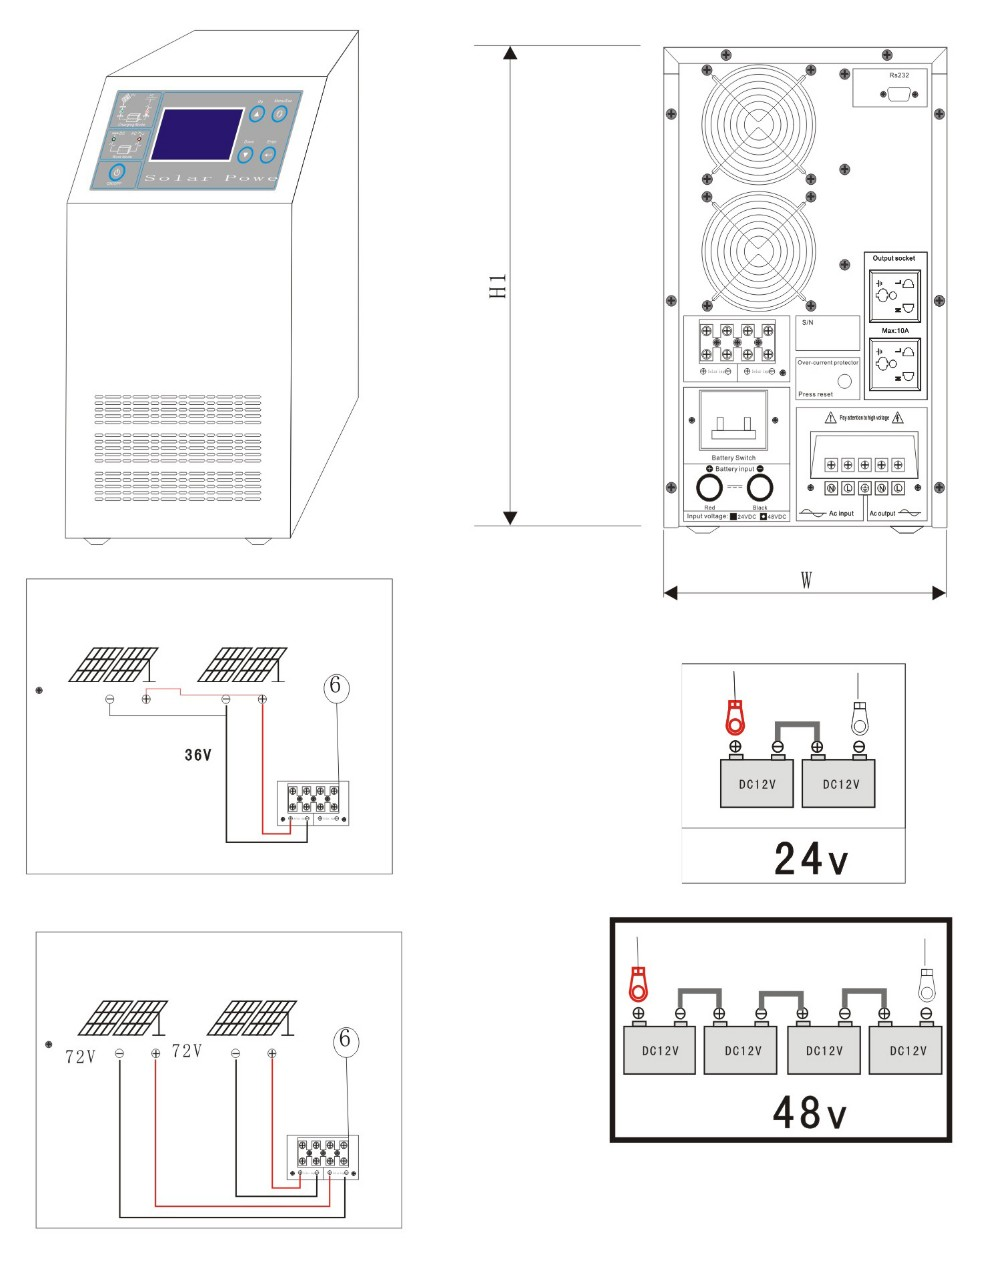 ups function solar inverter with controller built in for pv system easy connection